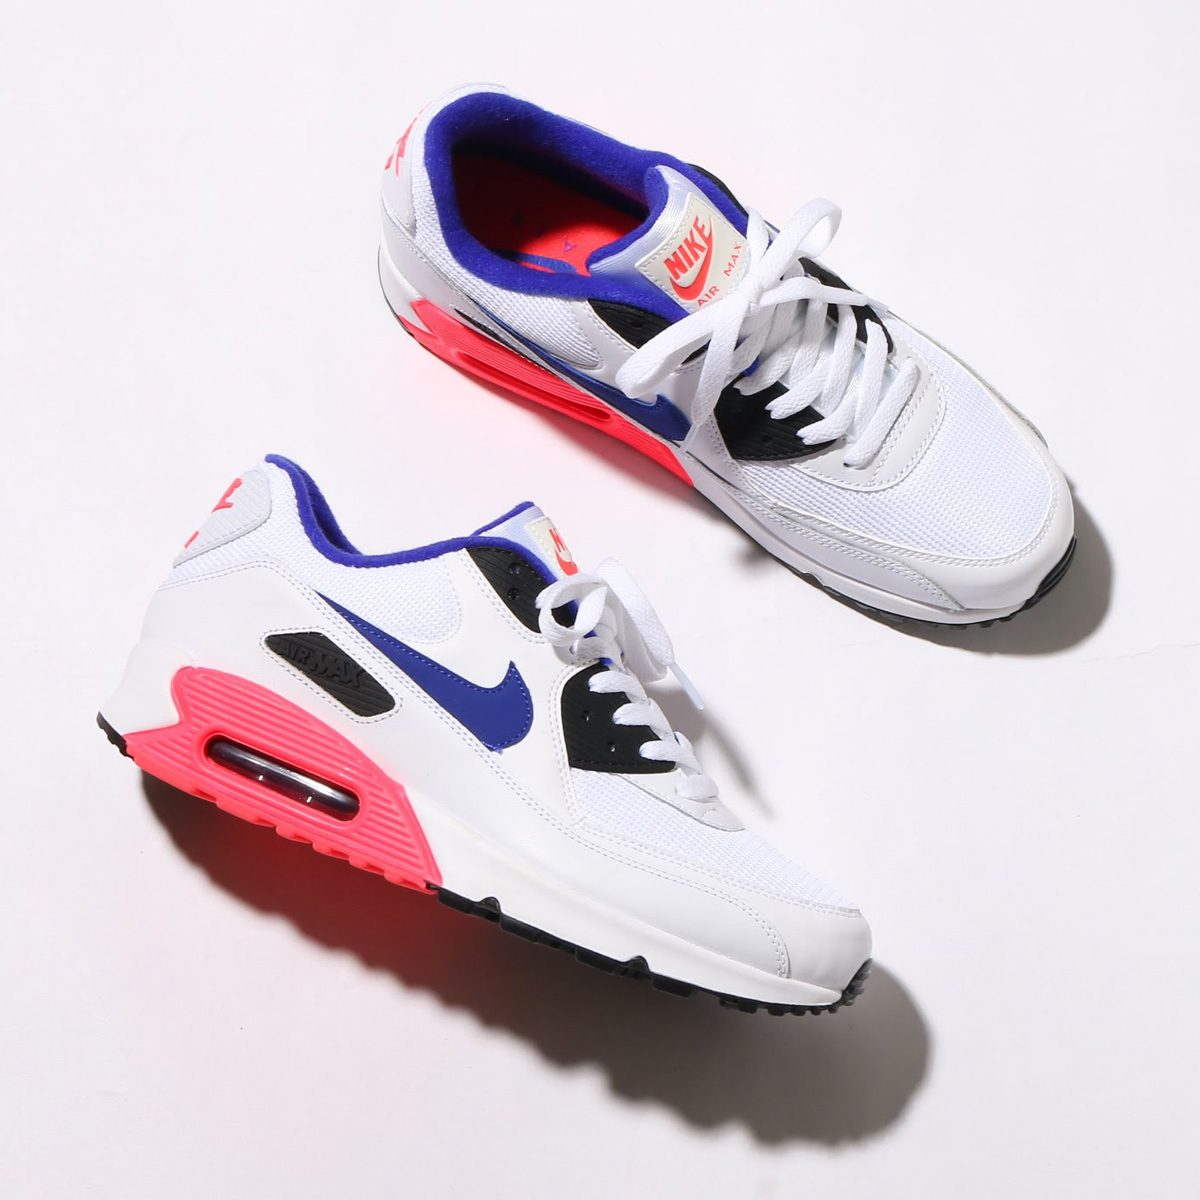 timeless design 9aaba 95bee maximum point 10 times that is targeted for all articles! NIKE AIR MAX 90  ESSENTIAL (Kie Ney AMAX 90 essential) (WHITE ULTRAMARINE-SOLAR RED-BLACK)  18SP-S